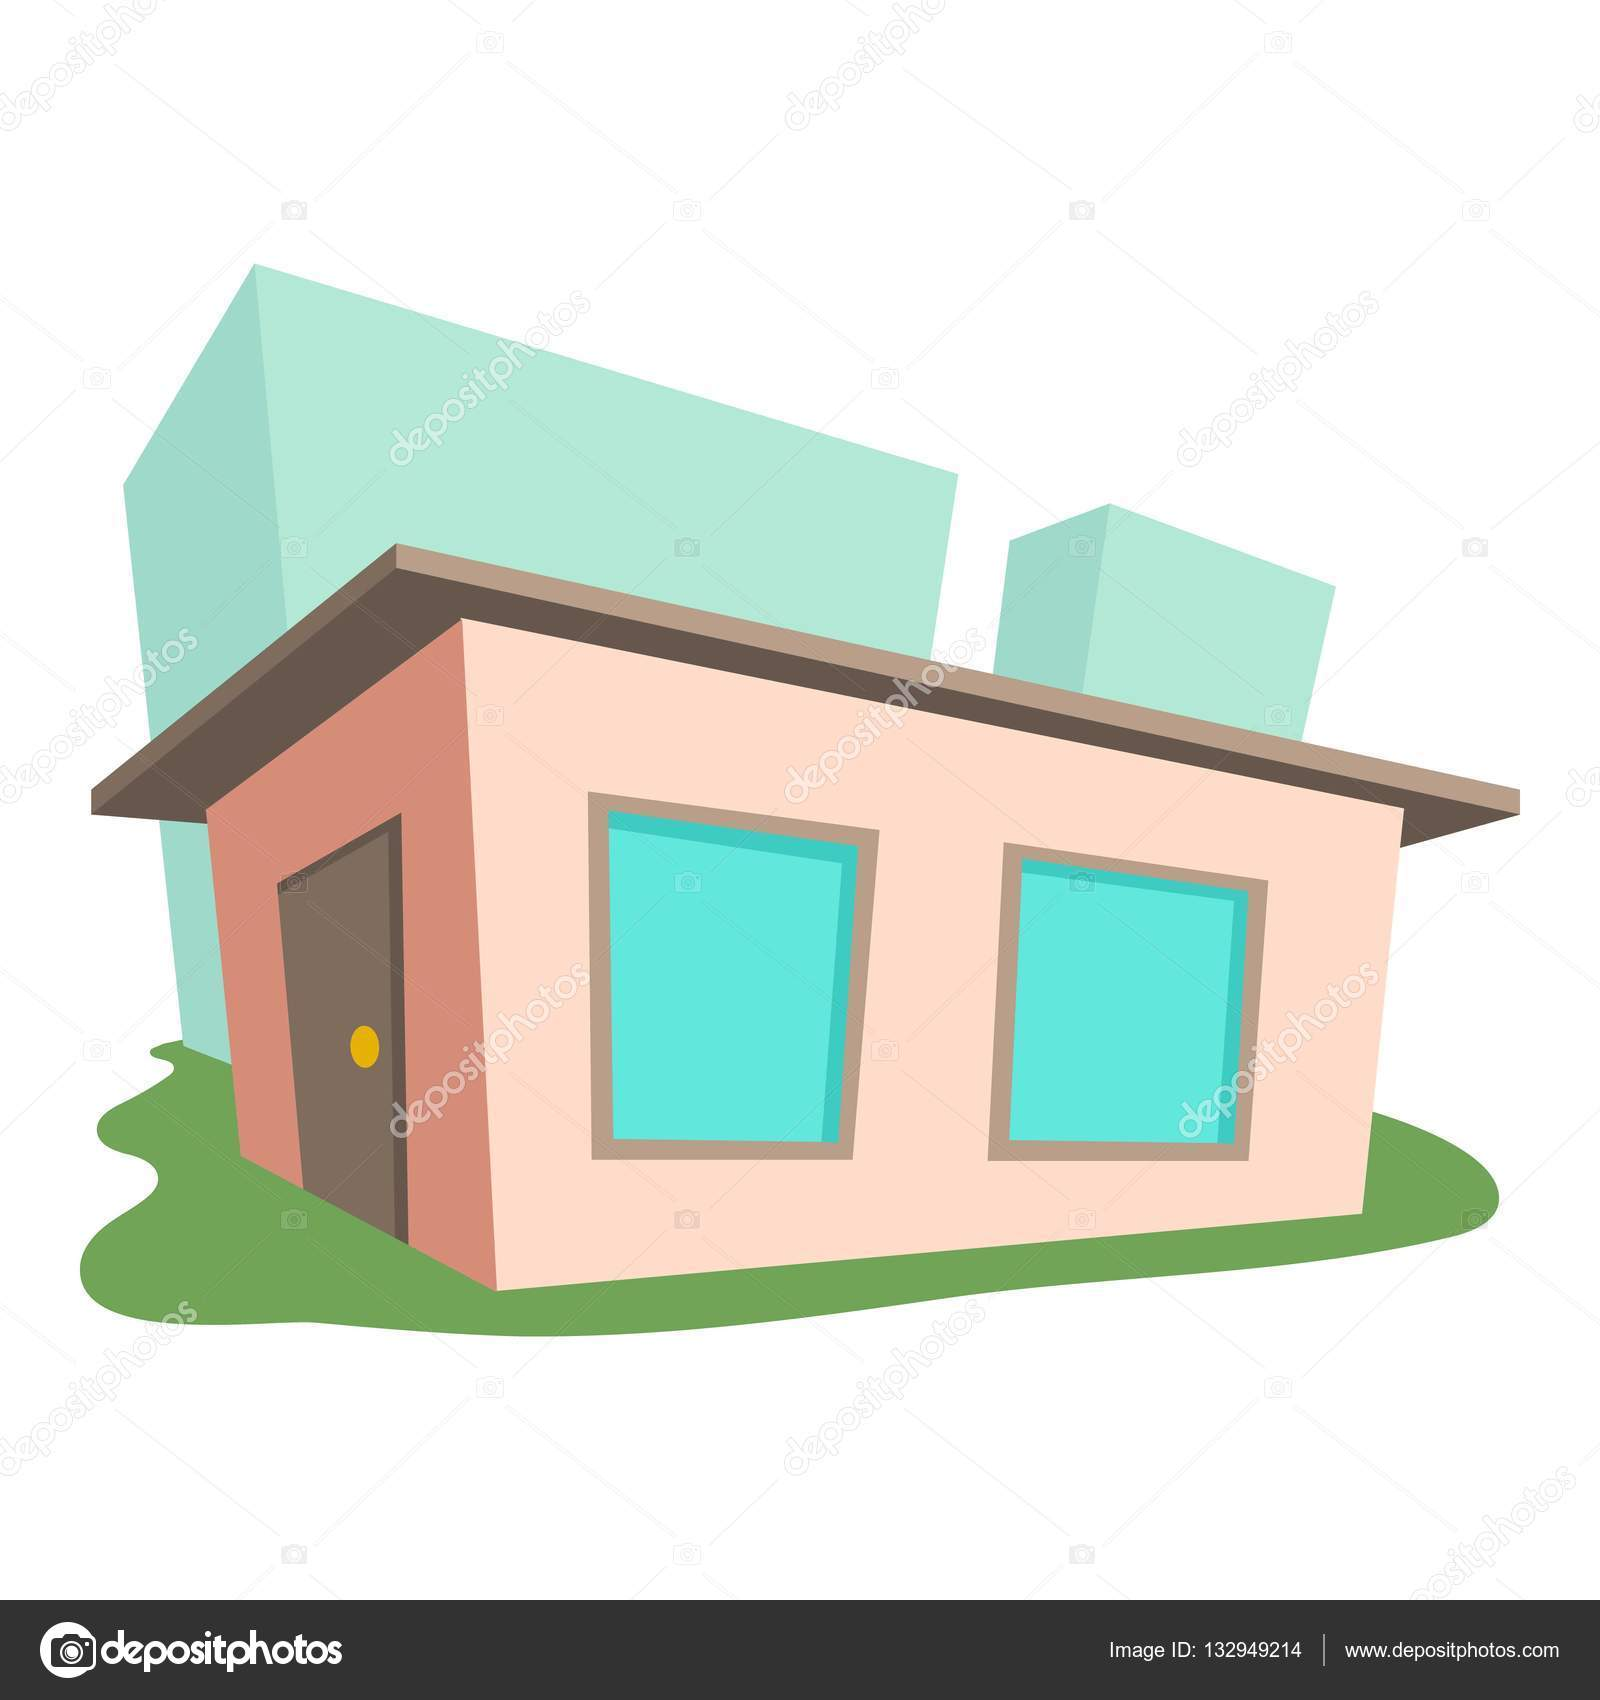 Kleines Haus, Symbol, Cartoon-Stil — Stockvektor © ylivdesign #132949214